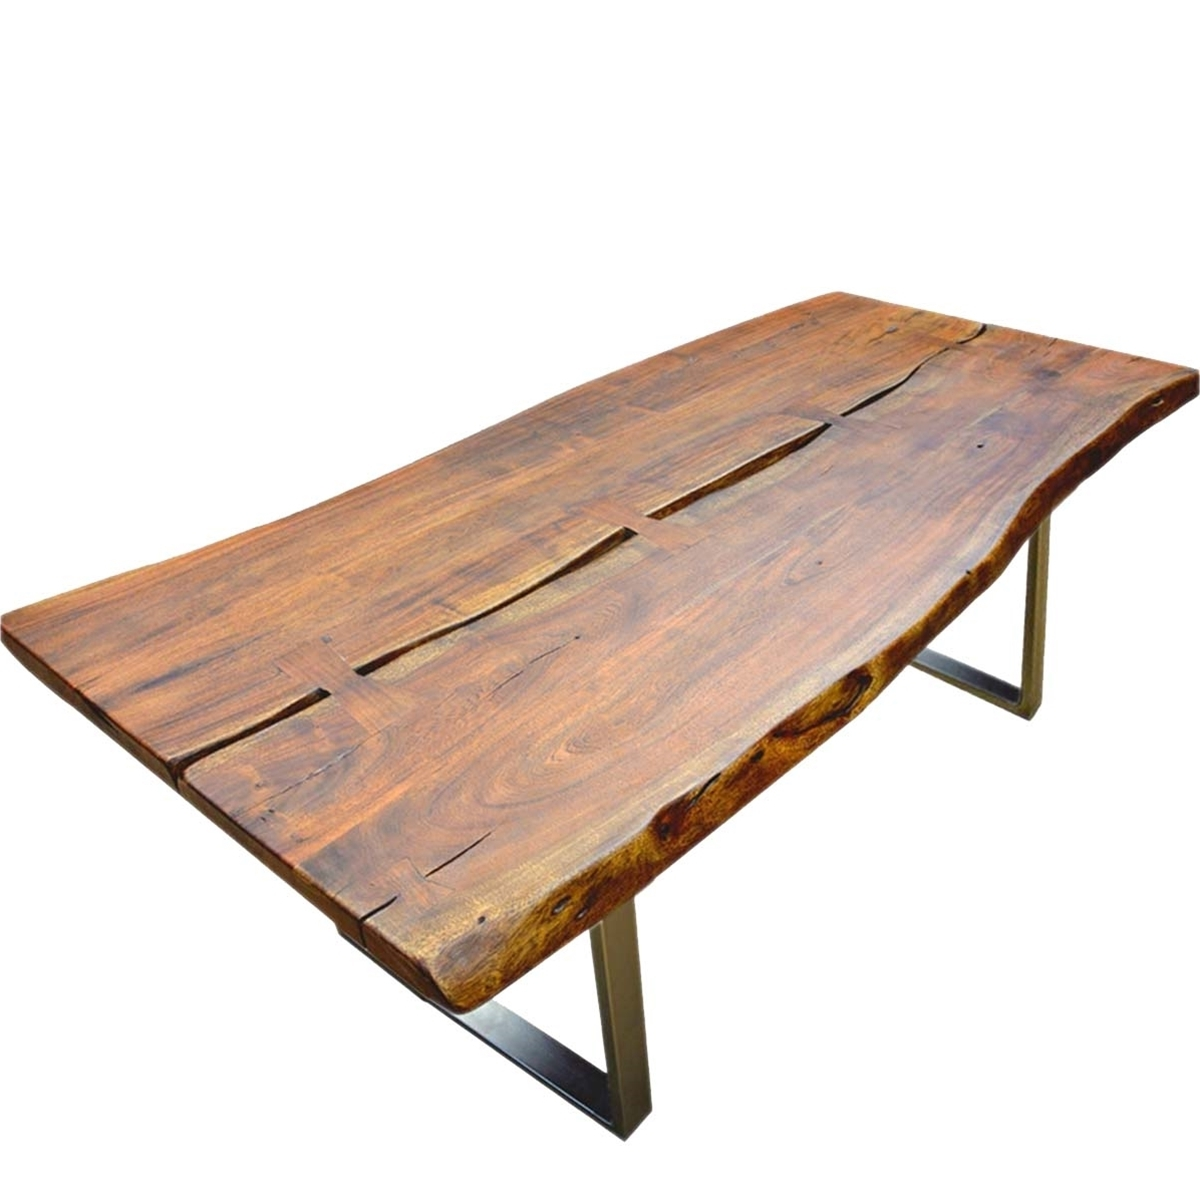 Most Recent Acacia Dining Tables Intended For Live Edge Acacia Wood & Iron Rustic Large Dining Table (View 7 of 25)